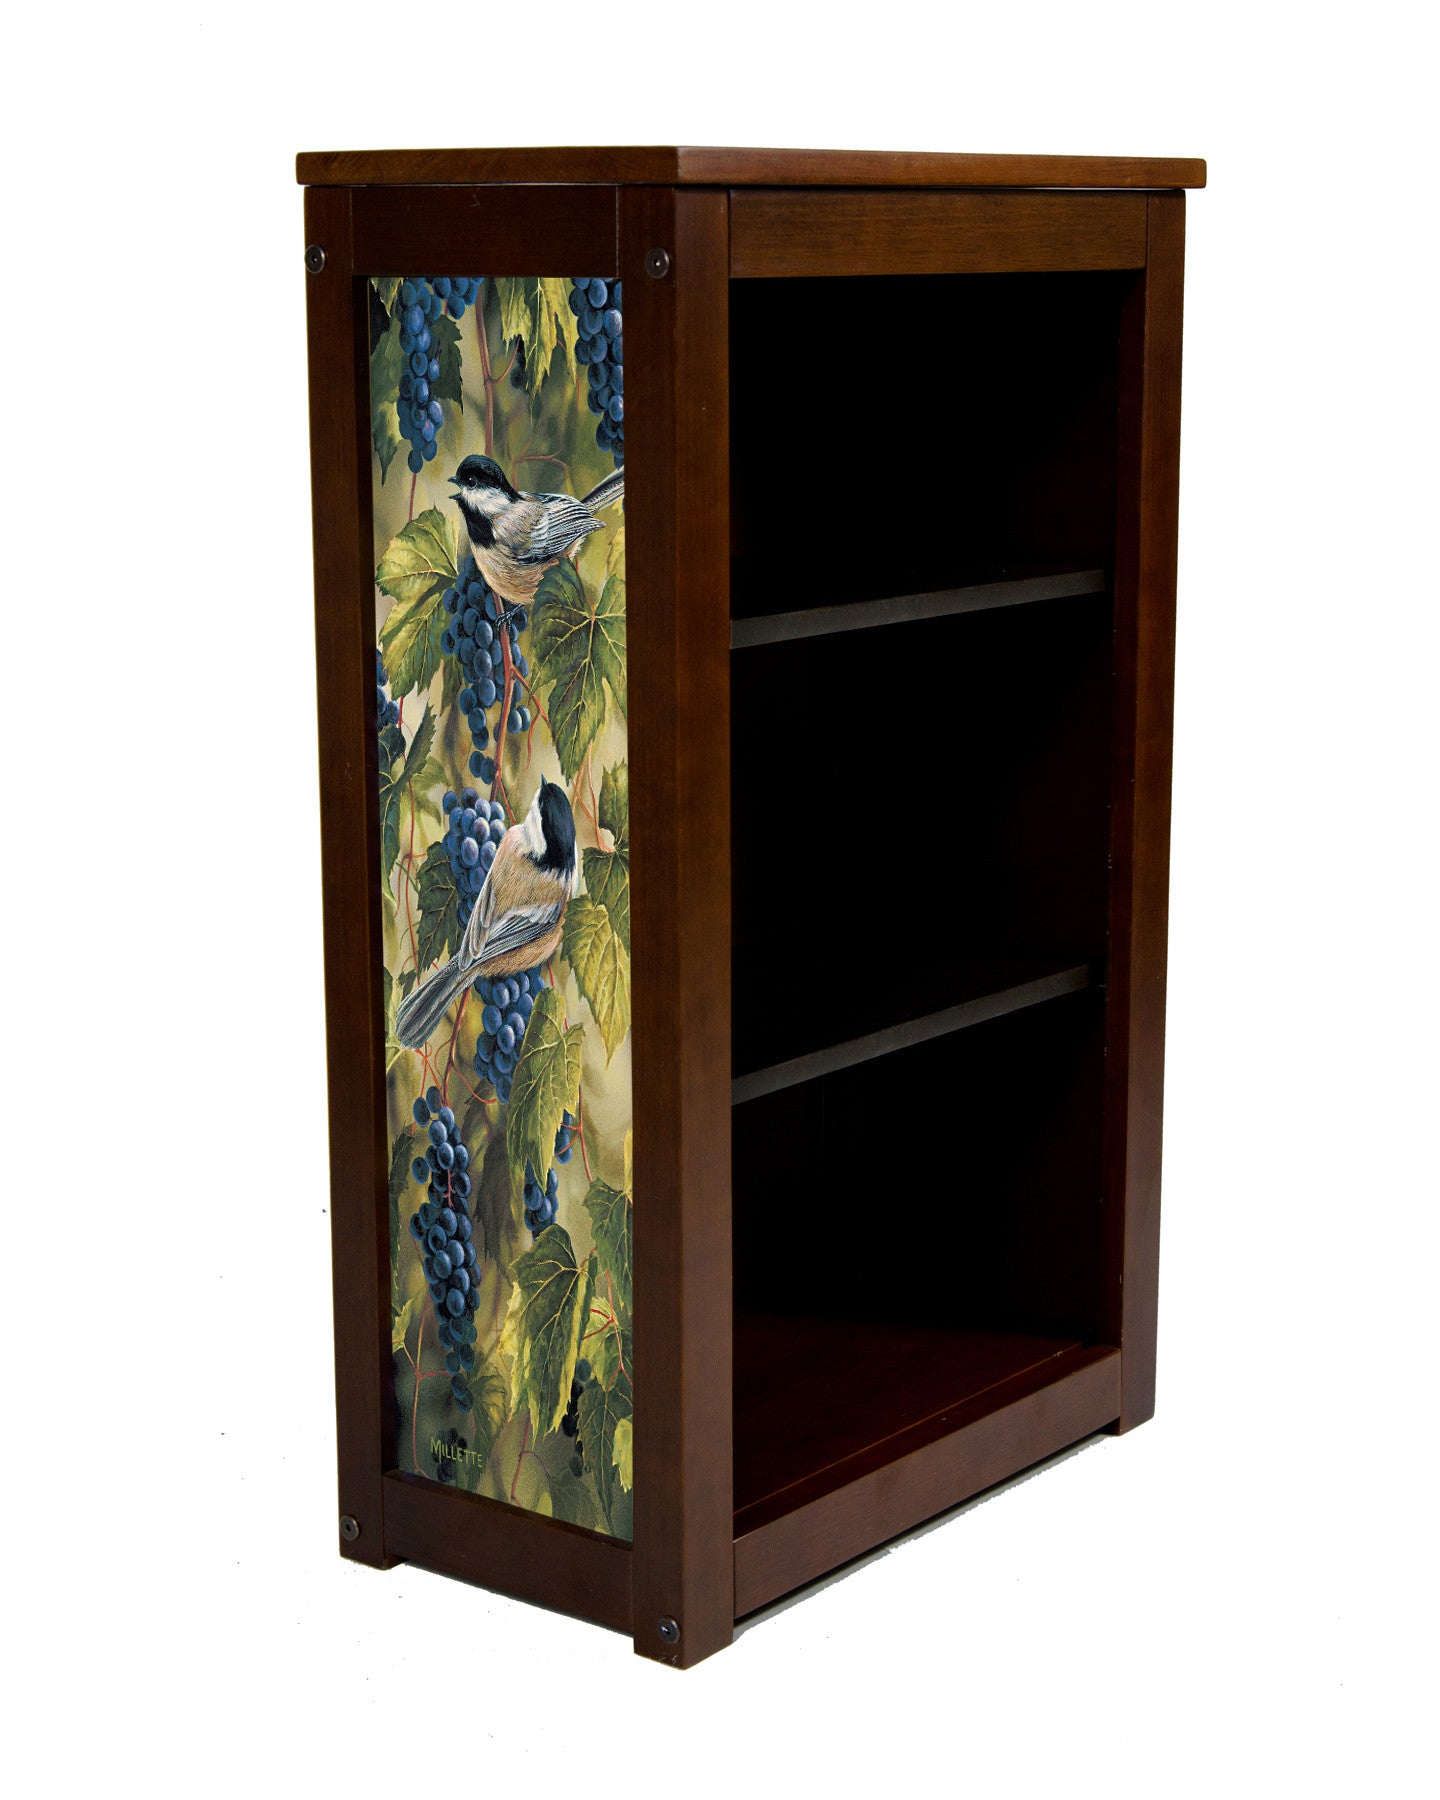 Chickadees book cabinet by Rosemary Millette